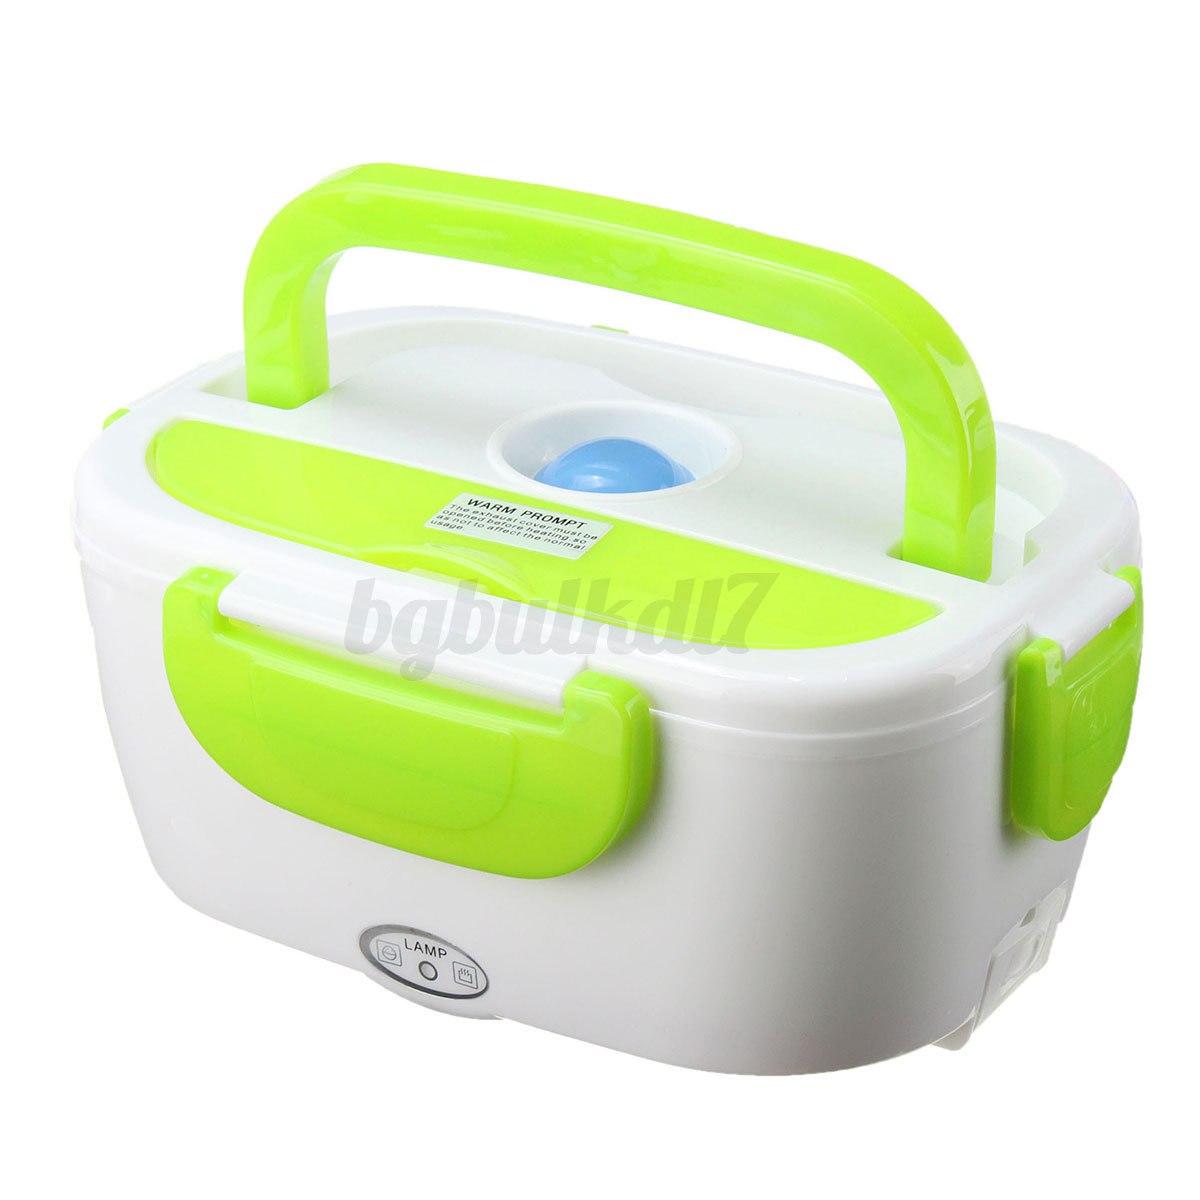 portable car plug electric heating heated lunch box bento food warmer contain. Black Bedroom Furniture Sets. Home Design Ideas